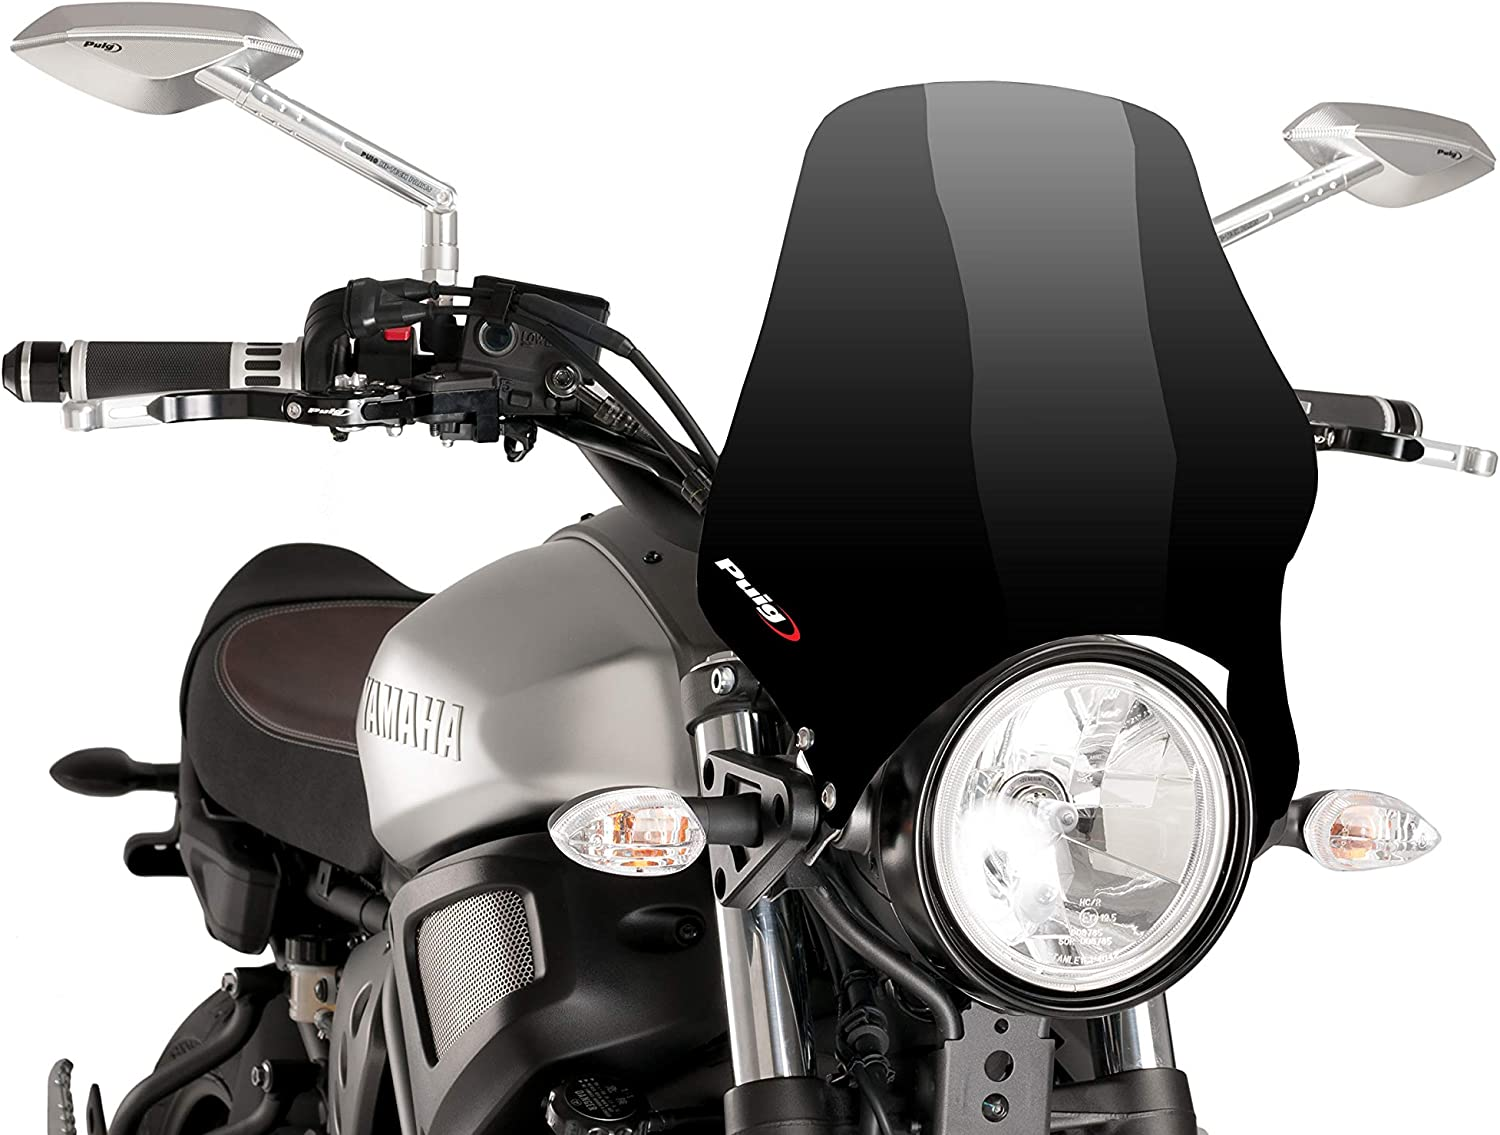 slightly GS550D Puig 0869H1242 Windscreen NAKED compatible for Suzuki GS 550